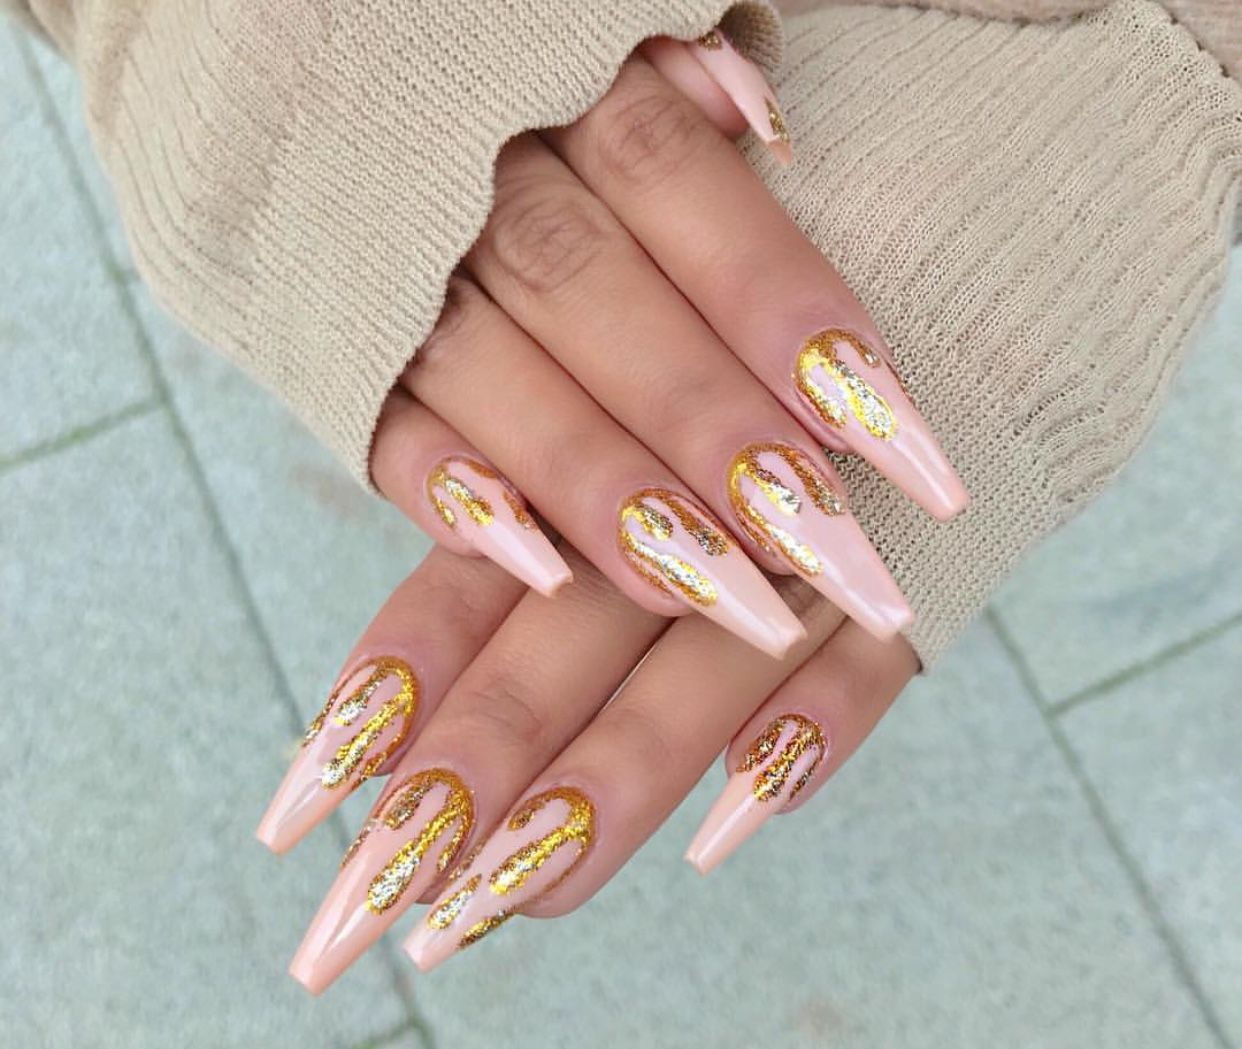 Pin by Dee🧡✨ on CLAWS✨   Pinterest   Nail nail and Coffin nails